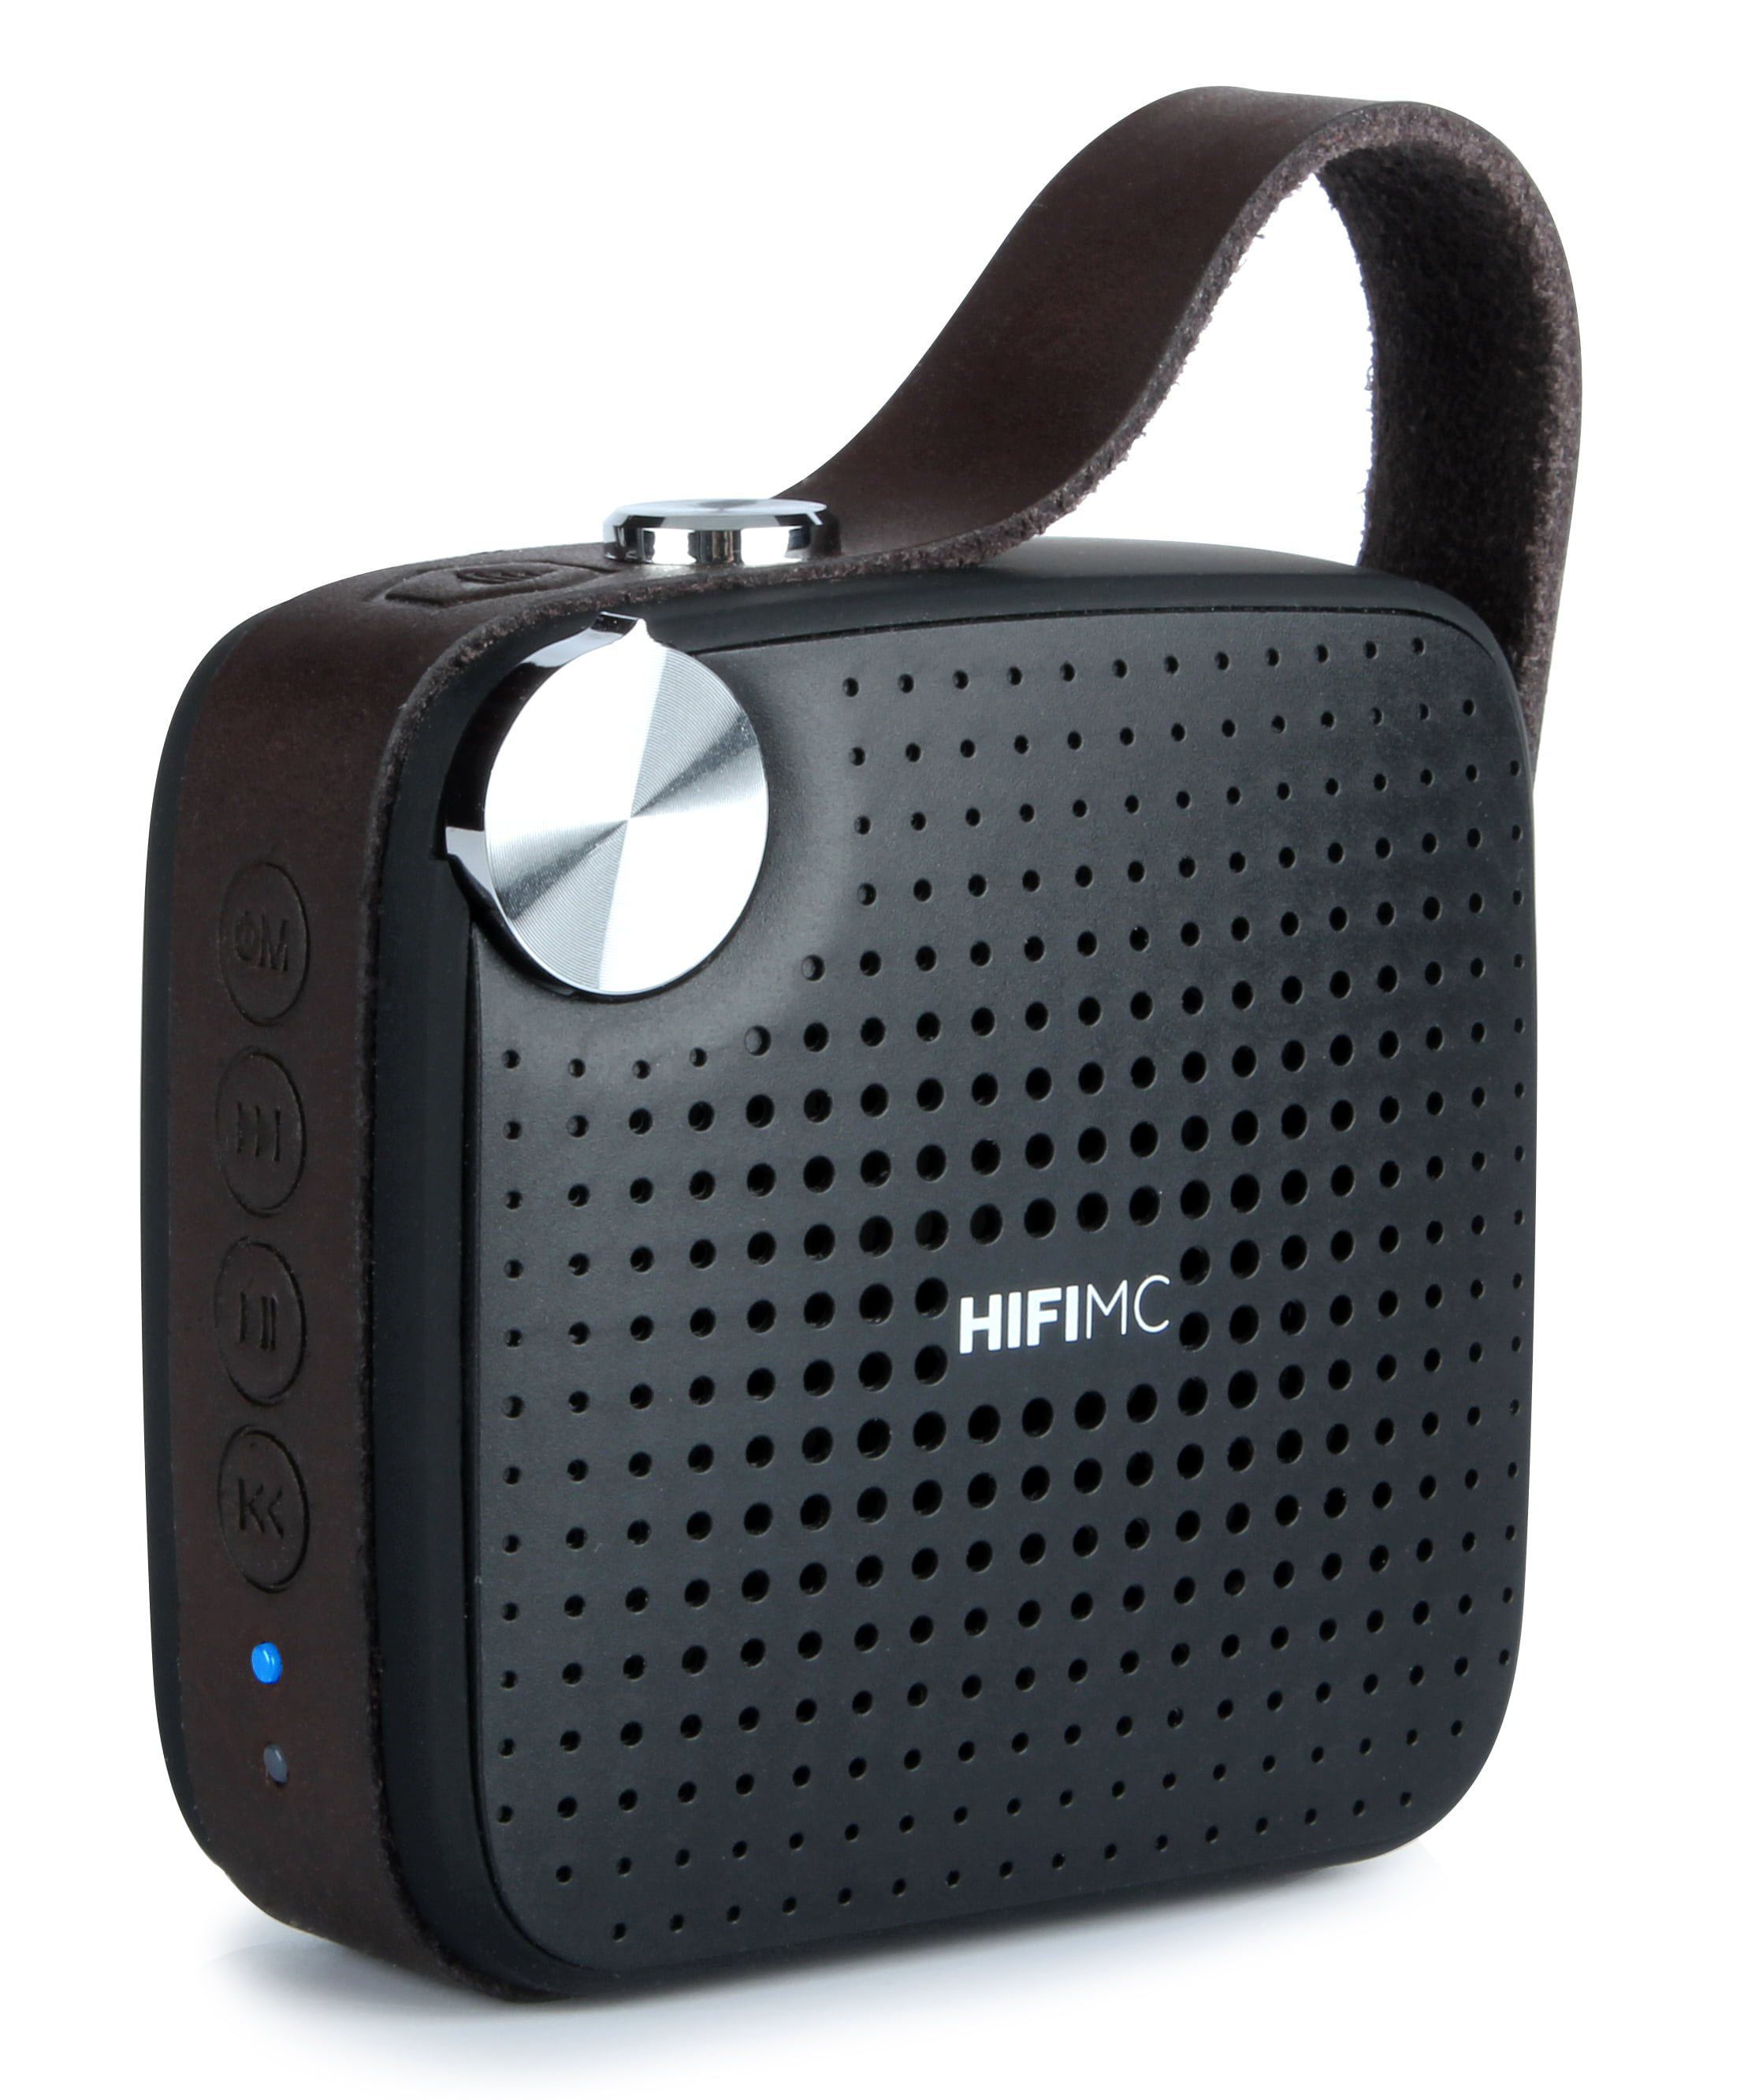 Introducing the Brand New, Highly Acclaimed HIFI MC Micro Music System by Modern Portable